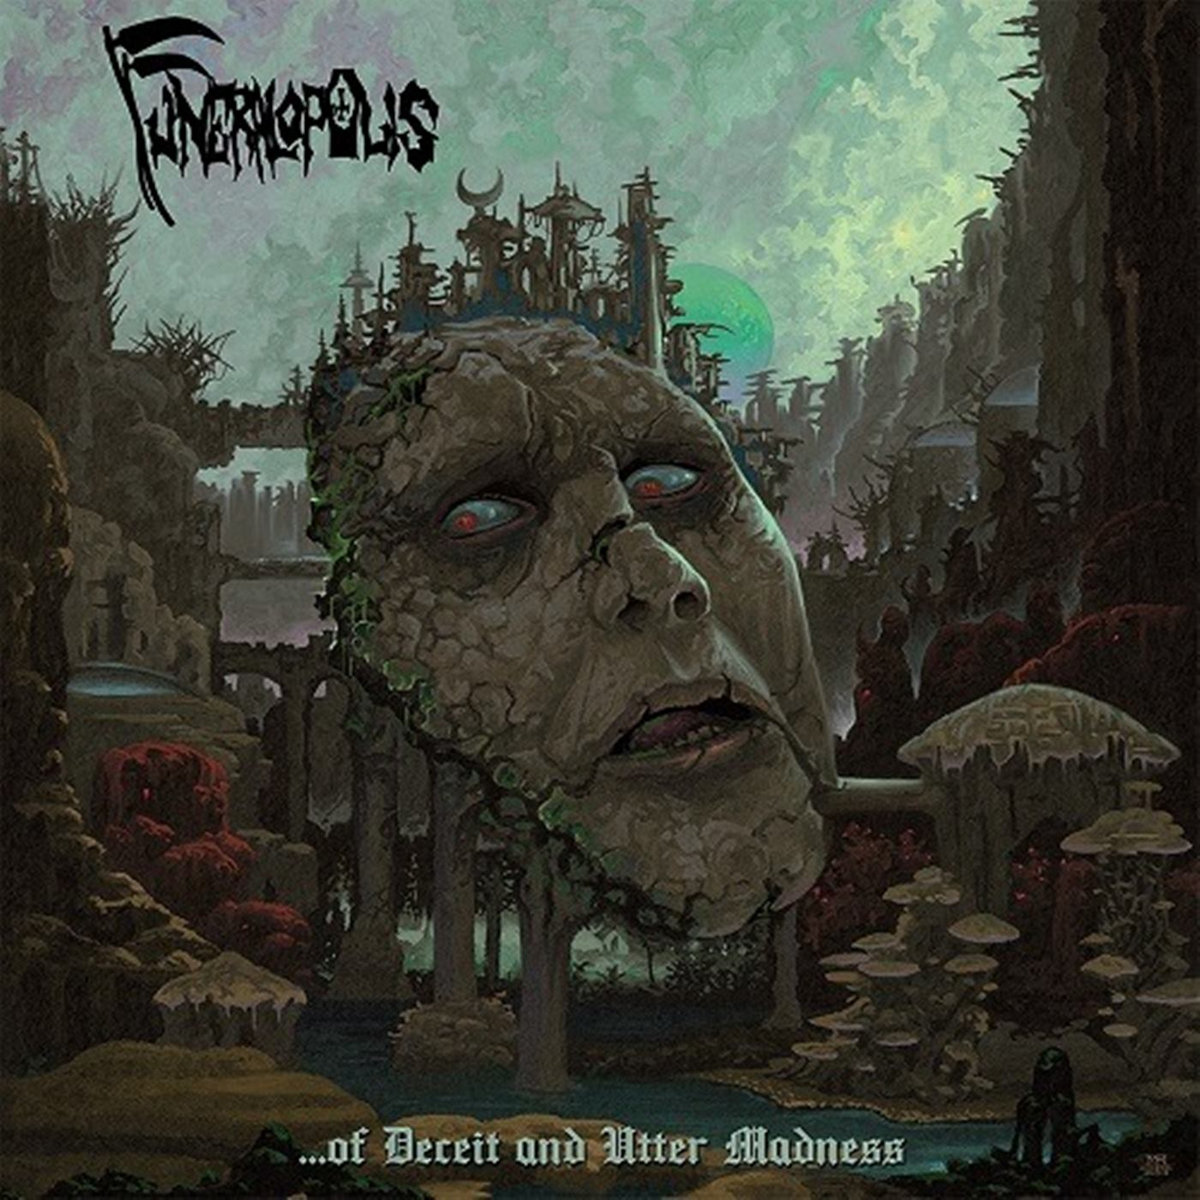 funeralopolis – …of deceit and utter madness